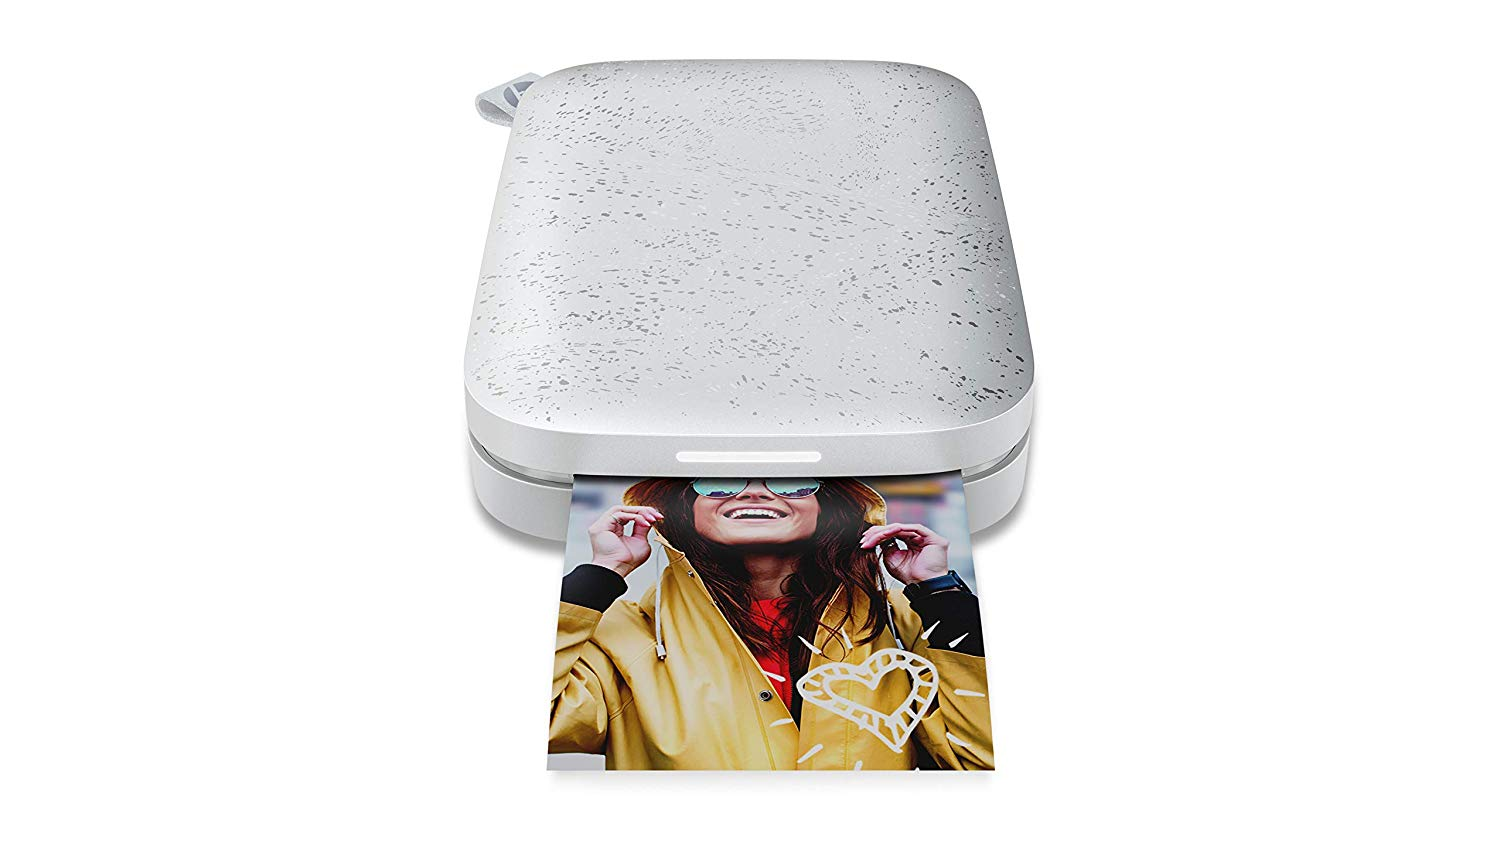 HP Sprocket mobiler Fotodrucker amazon